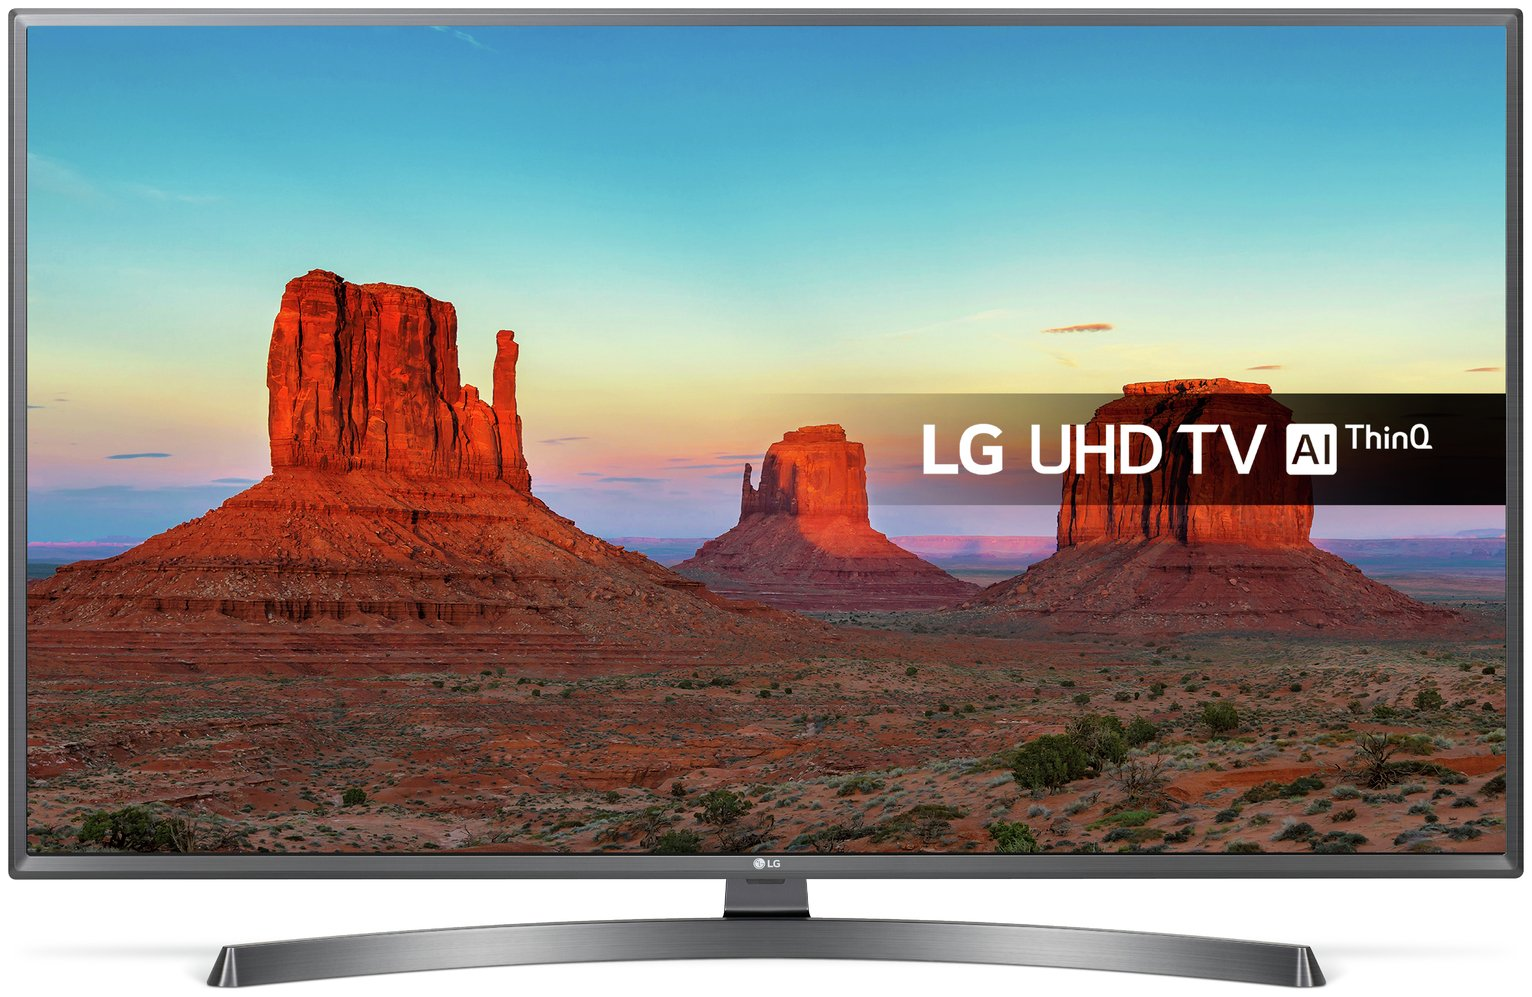 LG 55 Inch 55UK6750PLD Smart Ultra HD TV with HDR